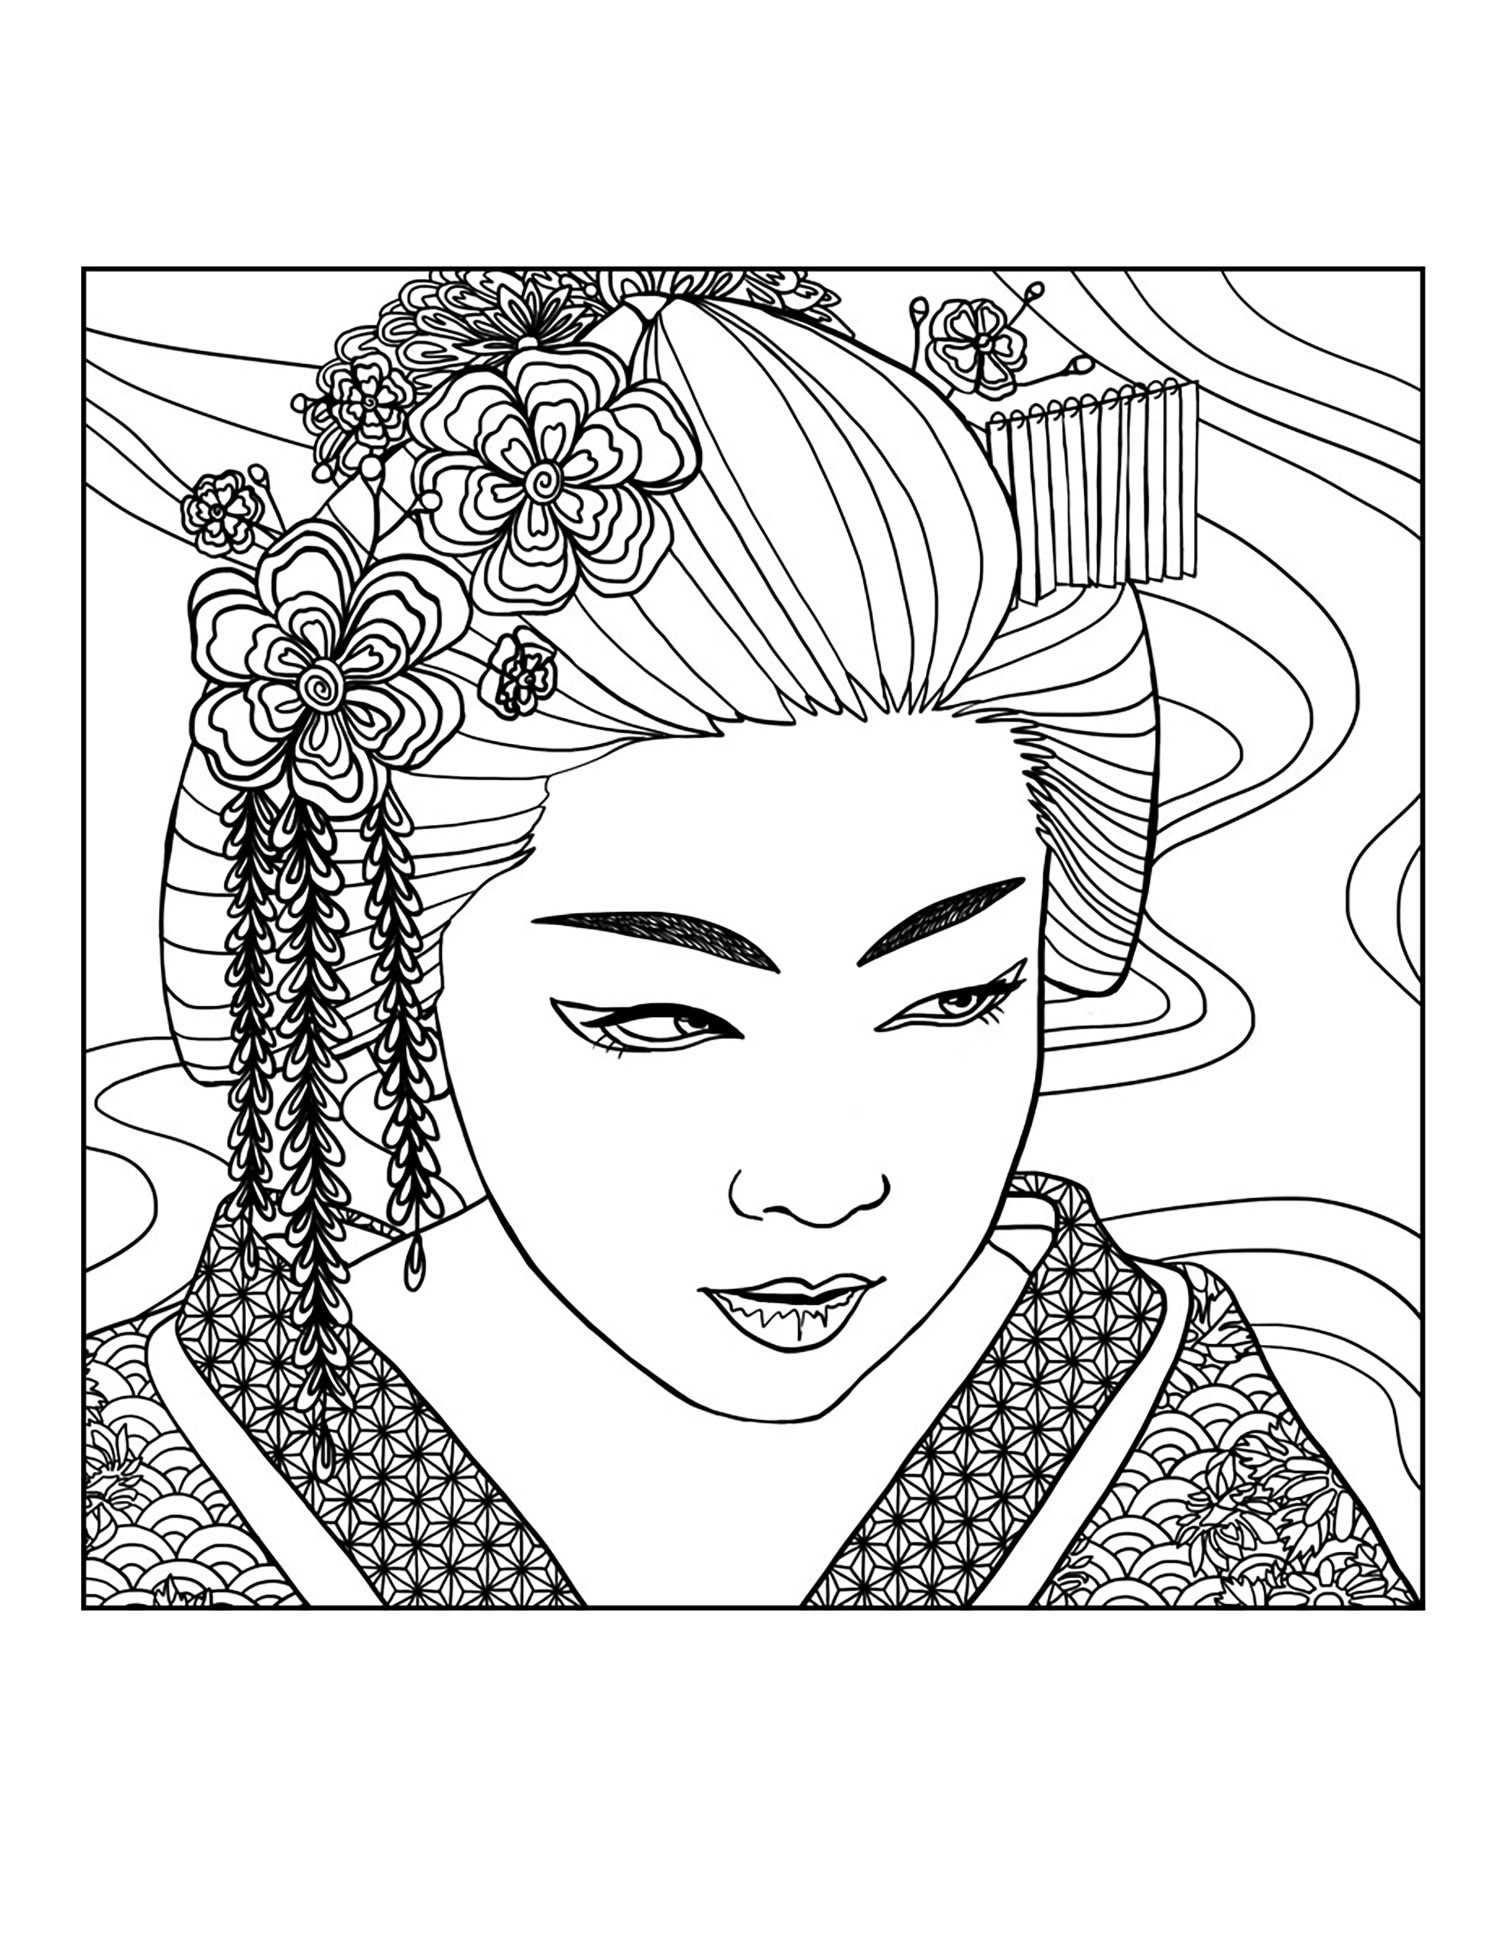 Geisha Coloring Download Geisha Coloring